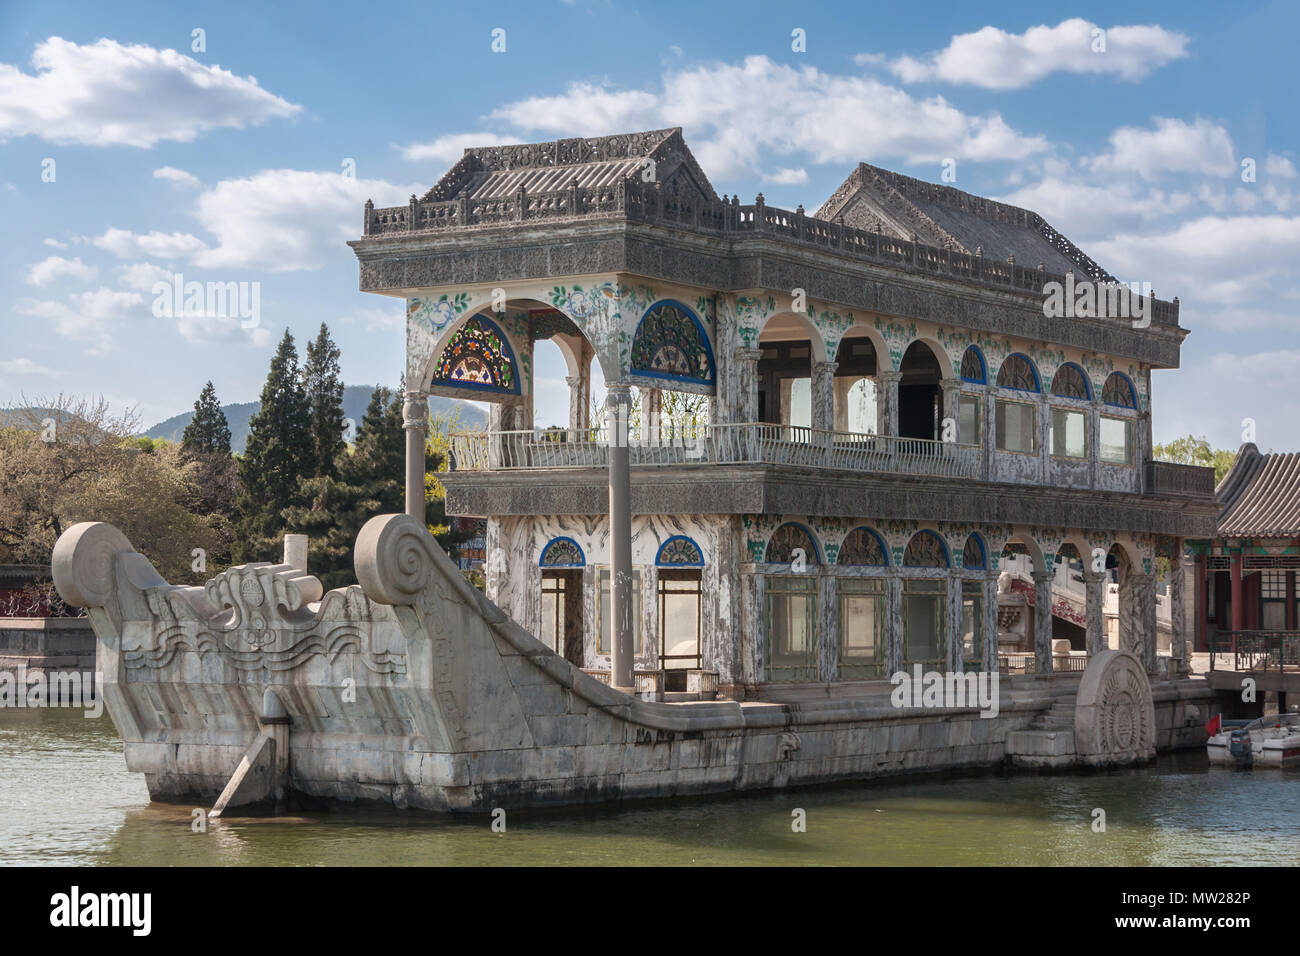 Beijing, China - April 29, 2010: Summer Palace. Closeup of gray marble pleasure boat with a few painted decorations docked at lake. Under blue sky wit - Stock Image